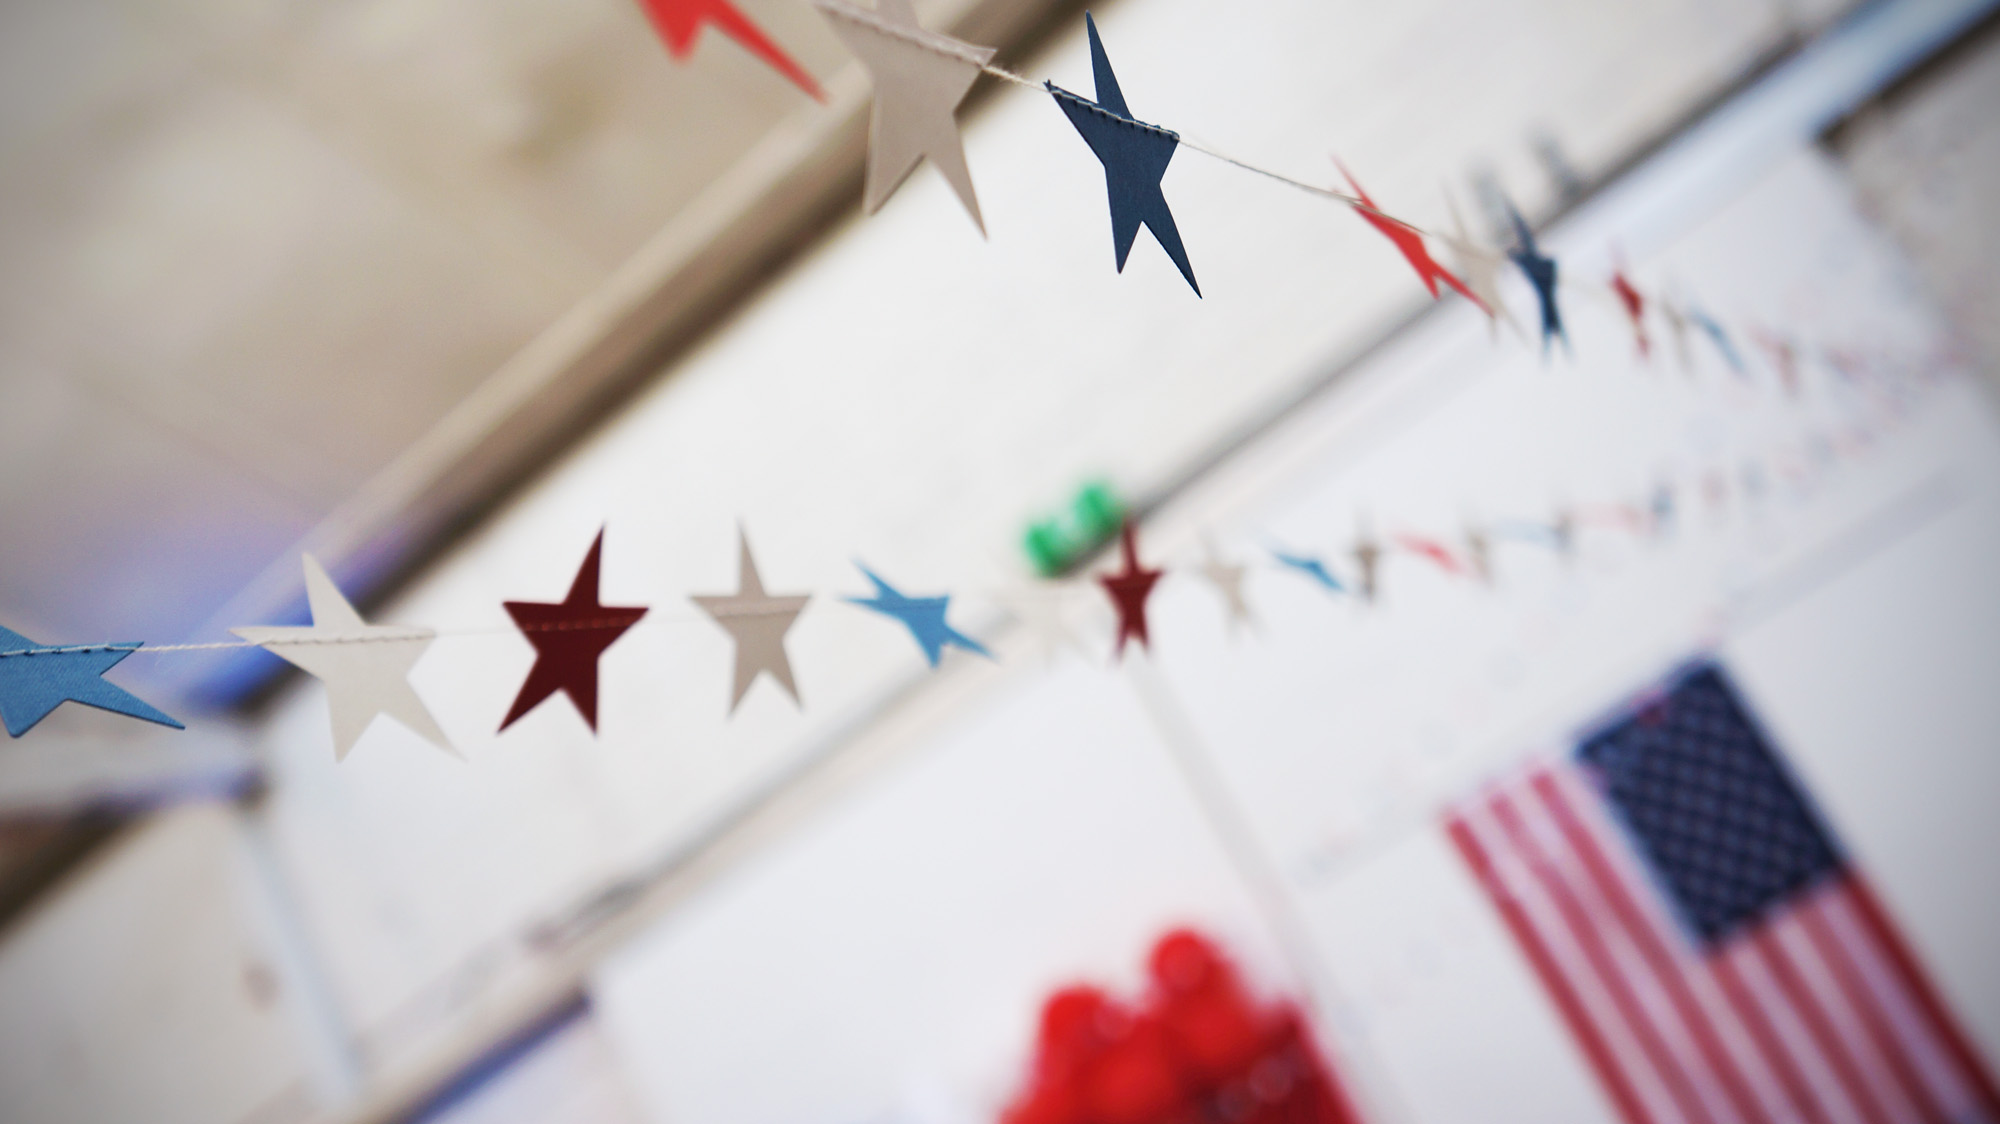 American Themed Party | the Path Less Traveled